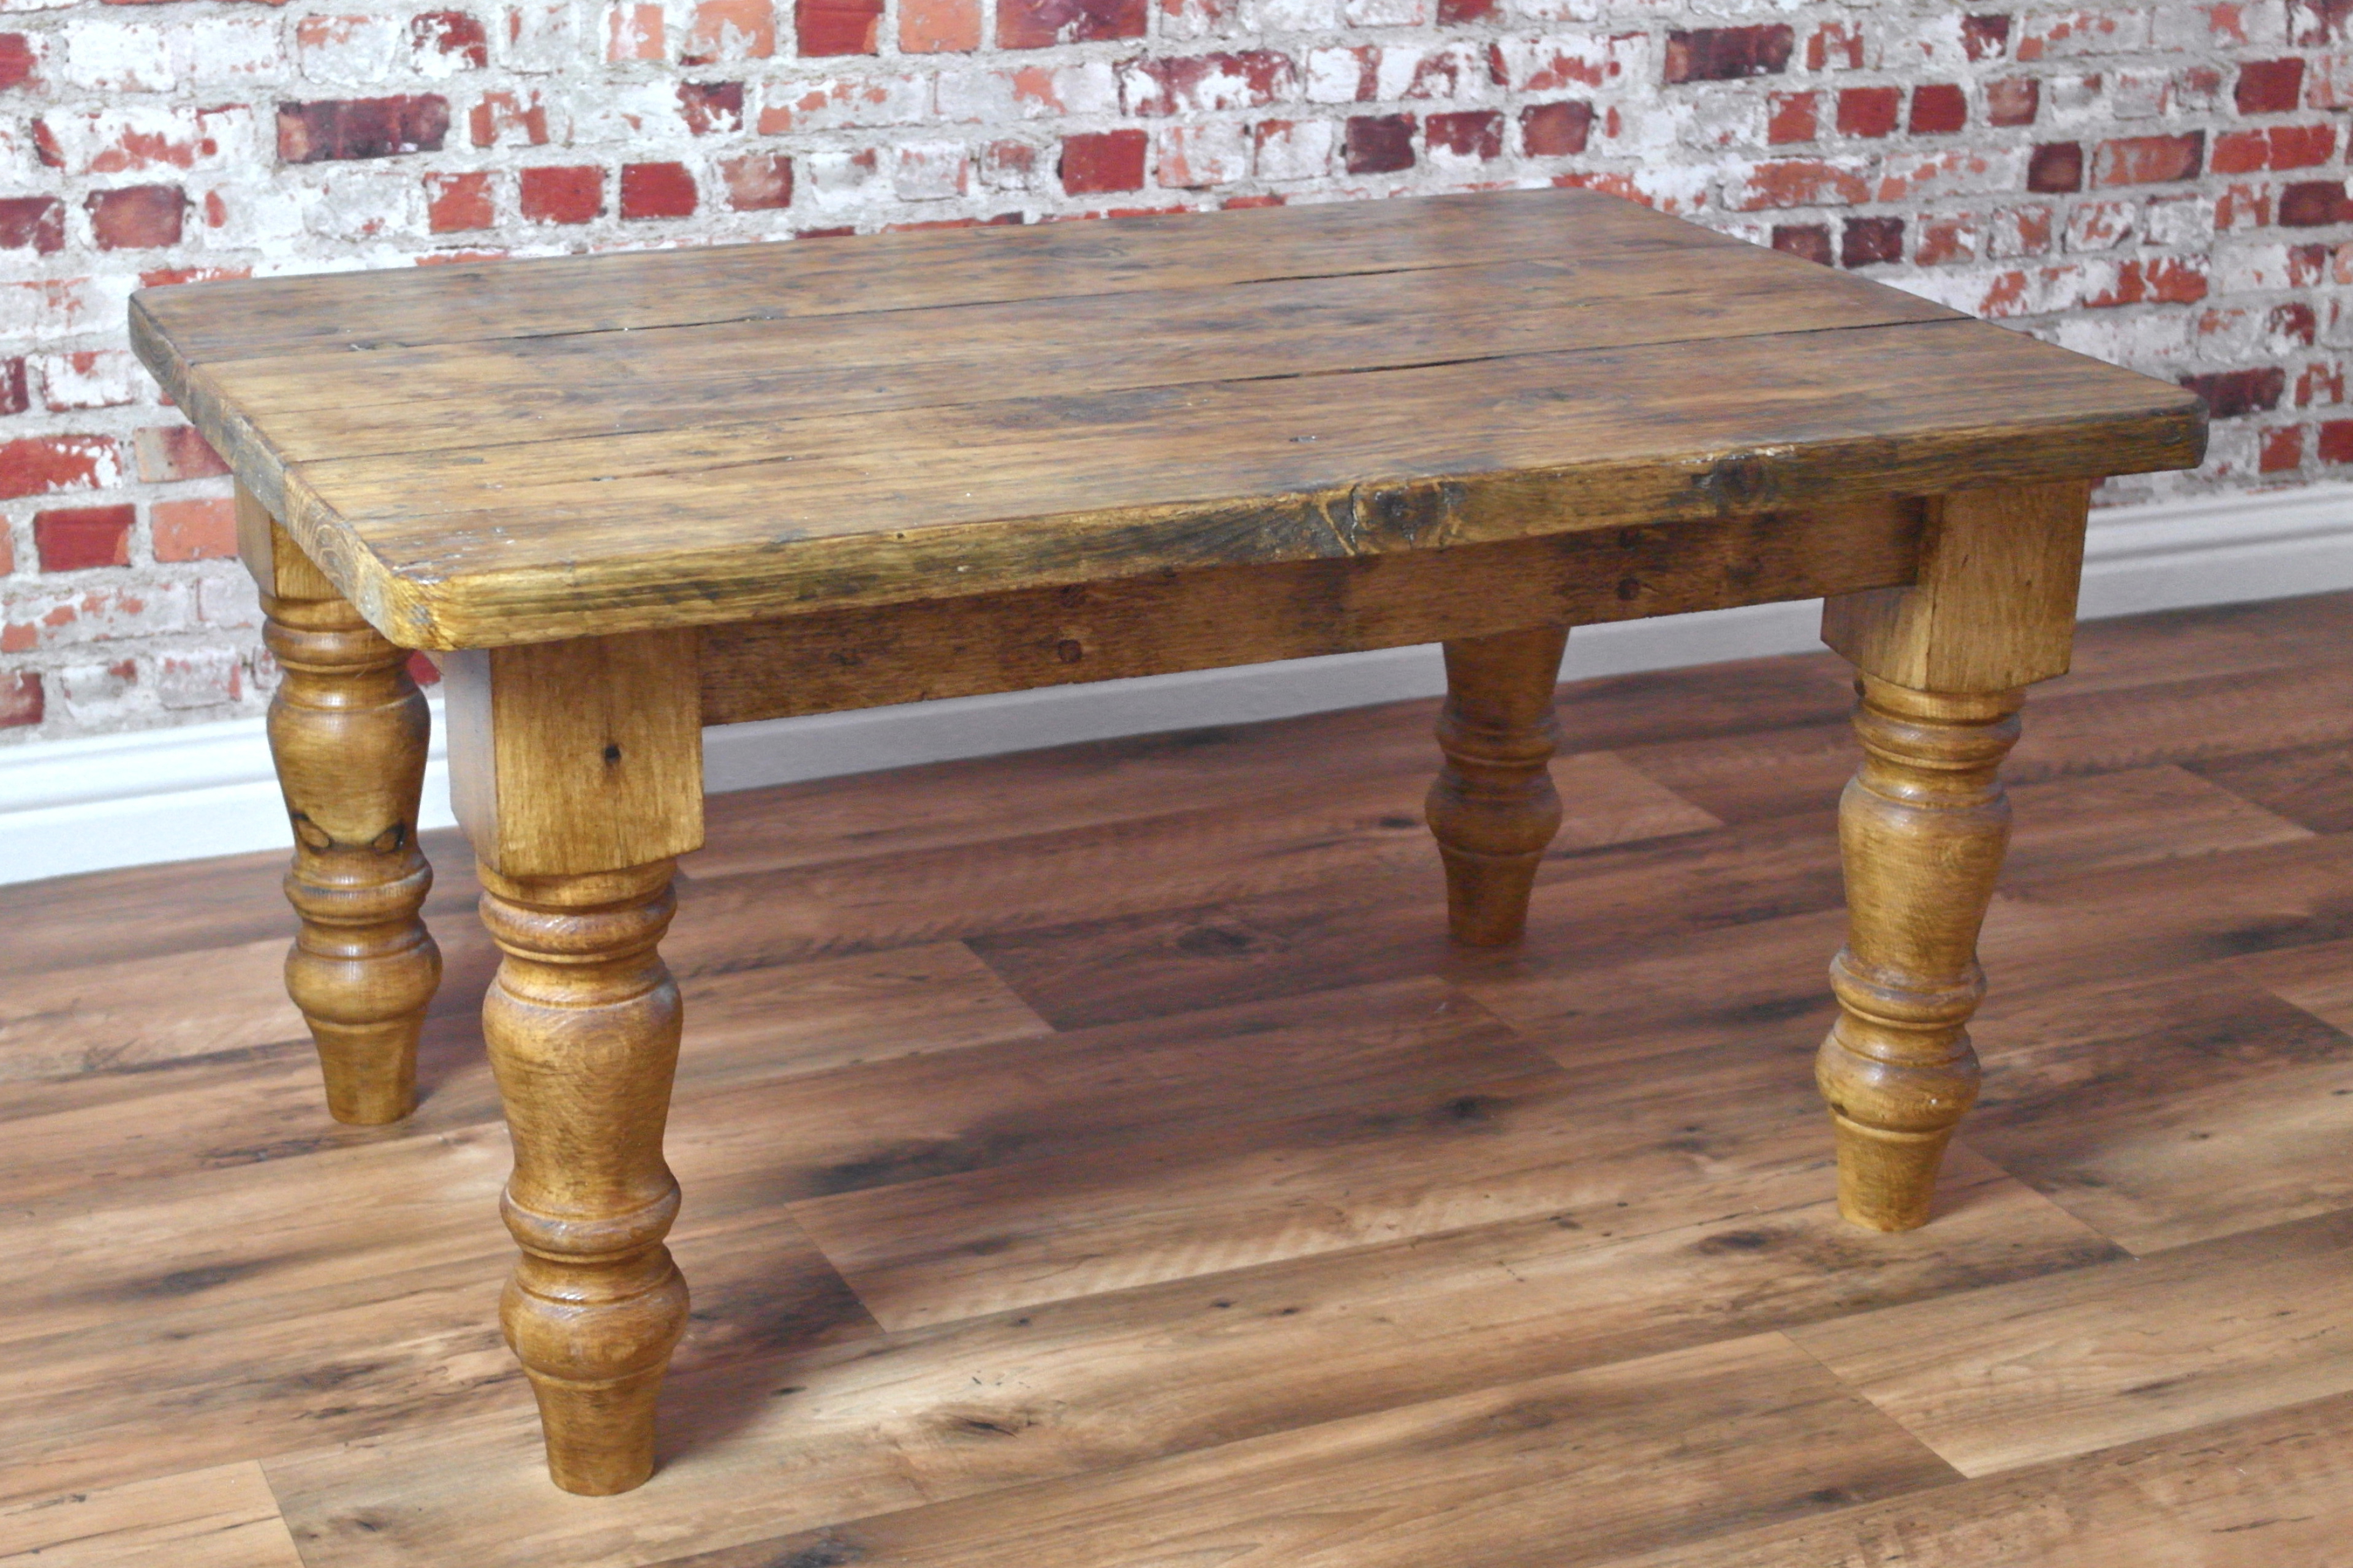 Rustic Farmhouse Pine Coffee Table Made From Reclaimed Wood For 2018 Reclaimed Pine Coffee Tables (View 7 of 20)